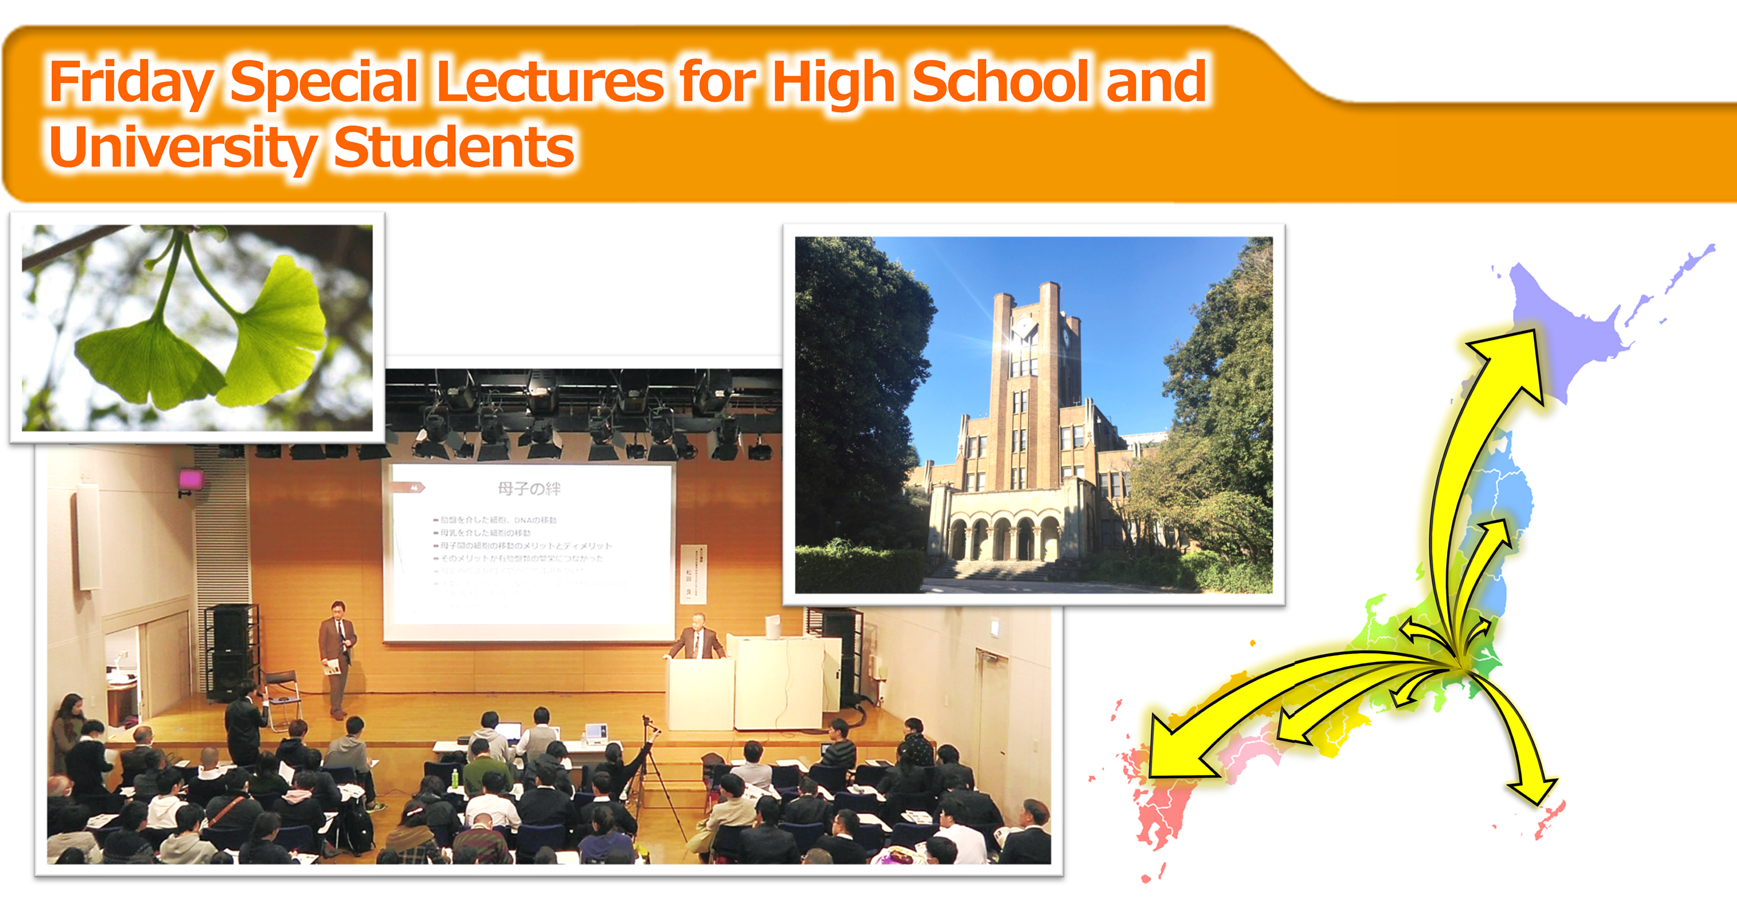 """Friday Special Lectures for High School and University Students"" hosted by the College of Arts and Sciences of the University of Tokyo are also available online."